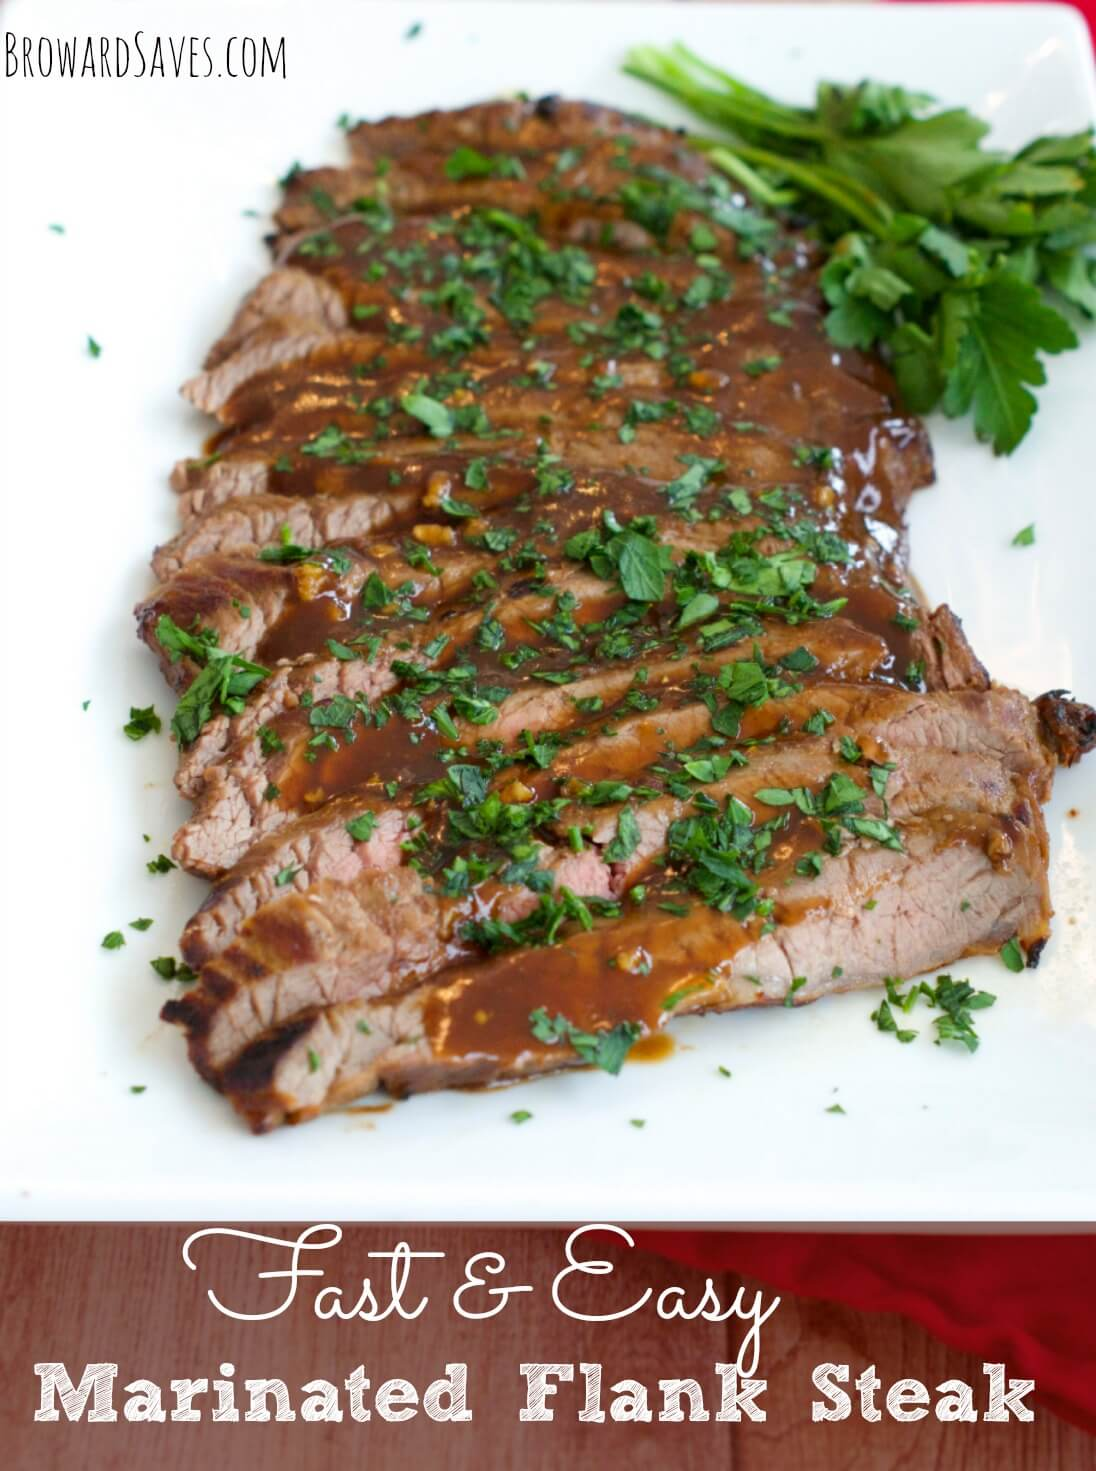 Marinated Flank Steak Dinner Recipe from Living Sweet Moments